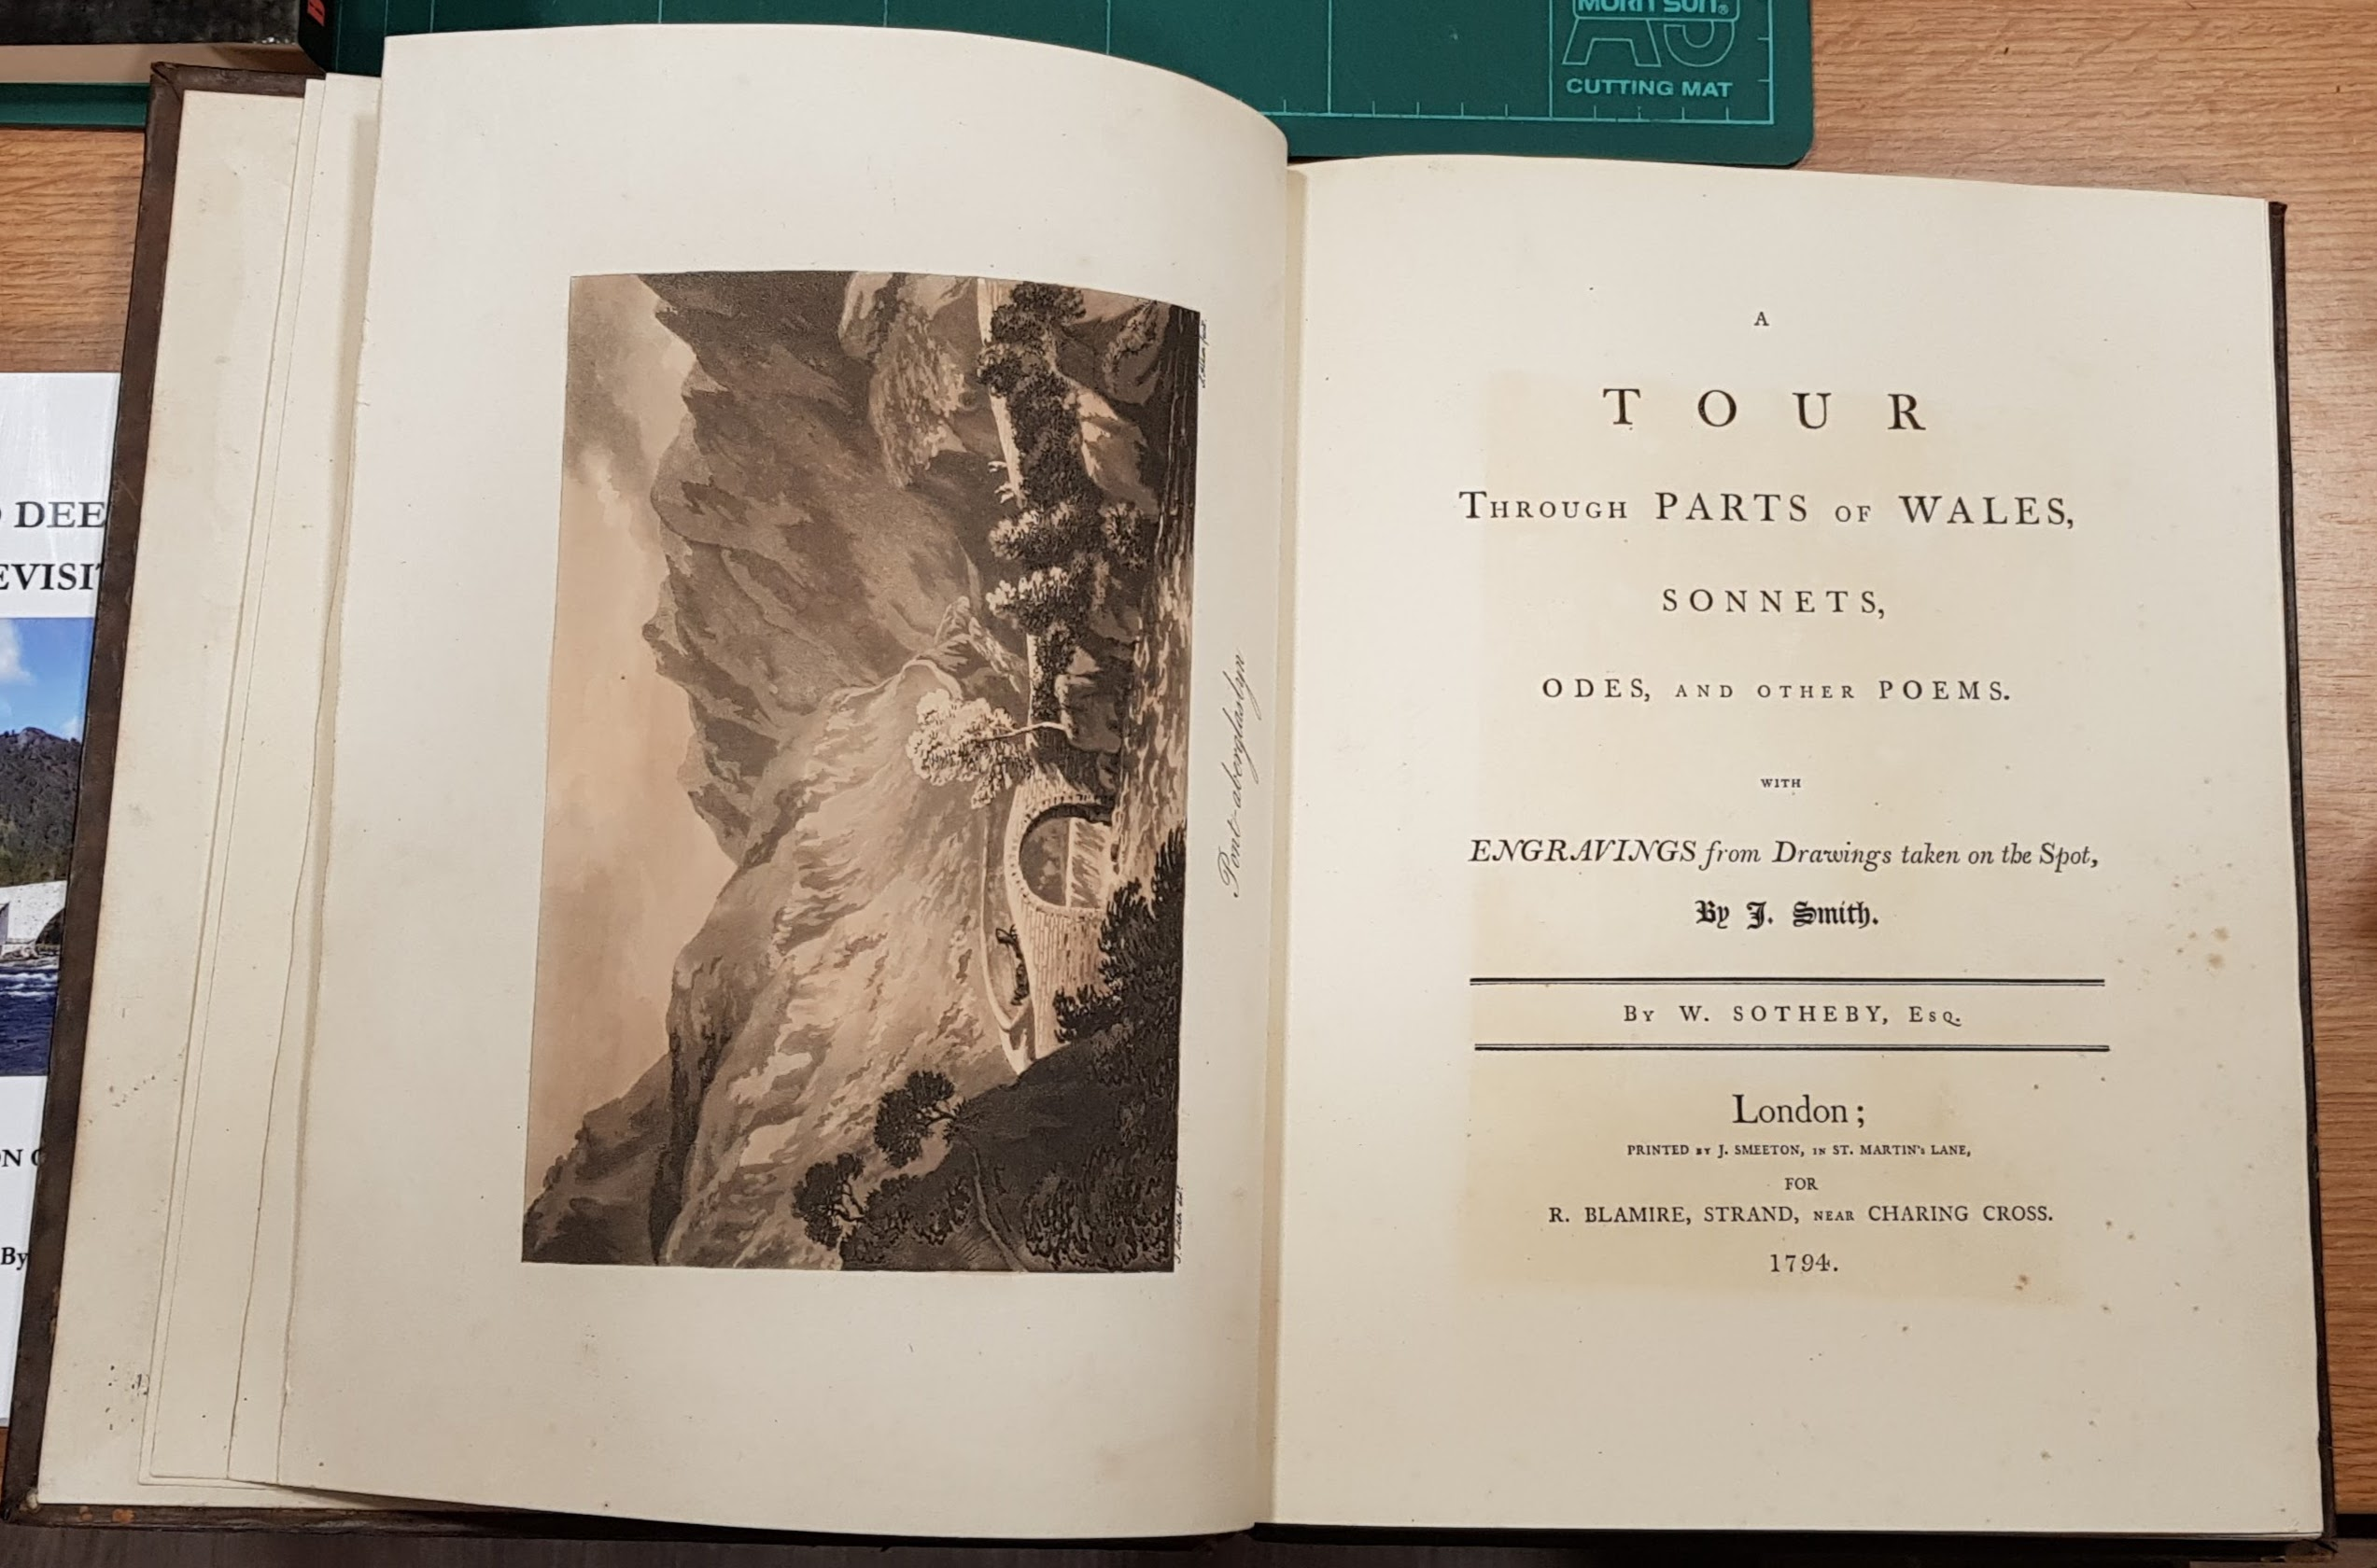 Image for A Tour Through Parts of Wales, Sonnets, Odes, and other Poems with Engravings from Drawings taken on the Spot.